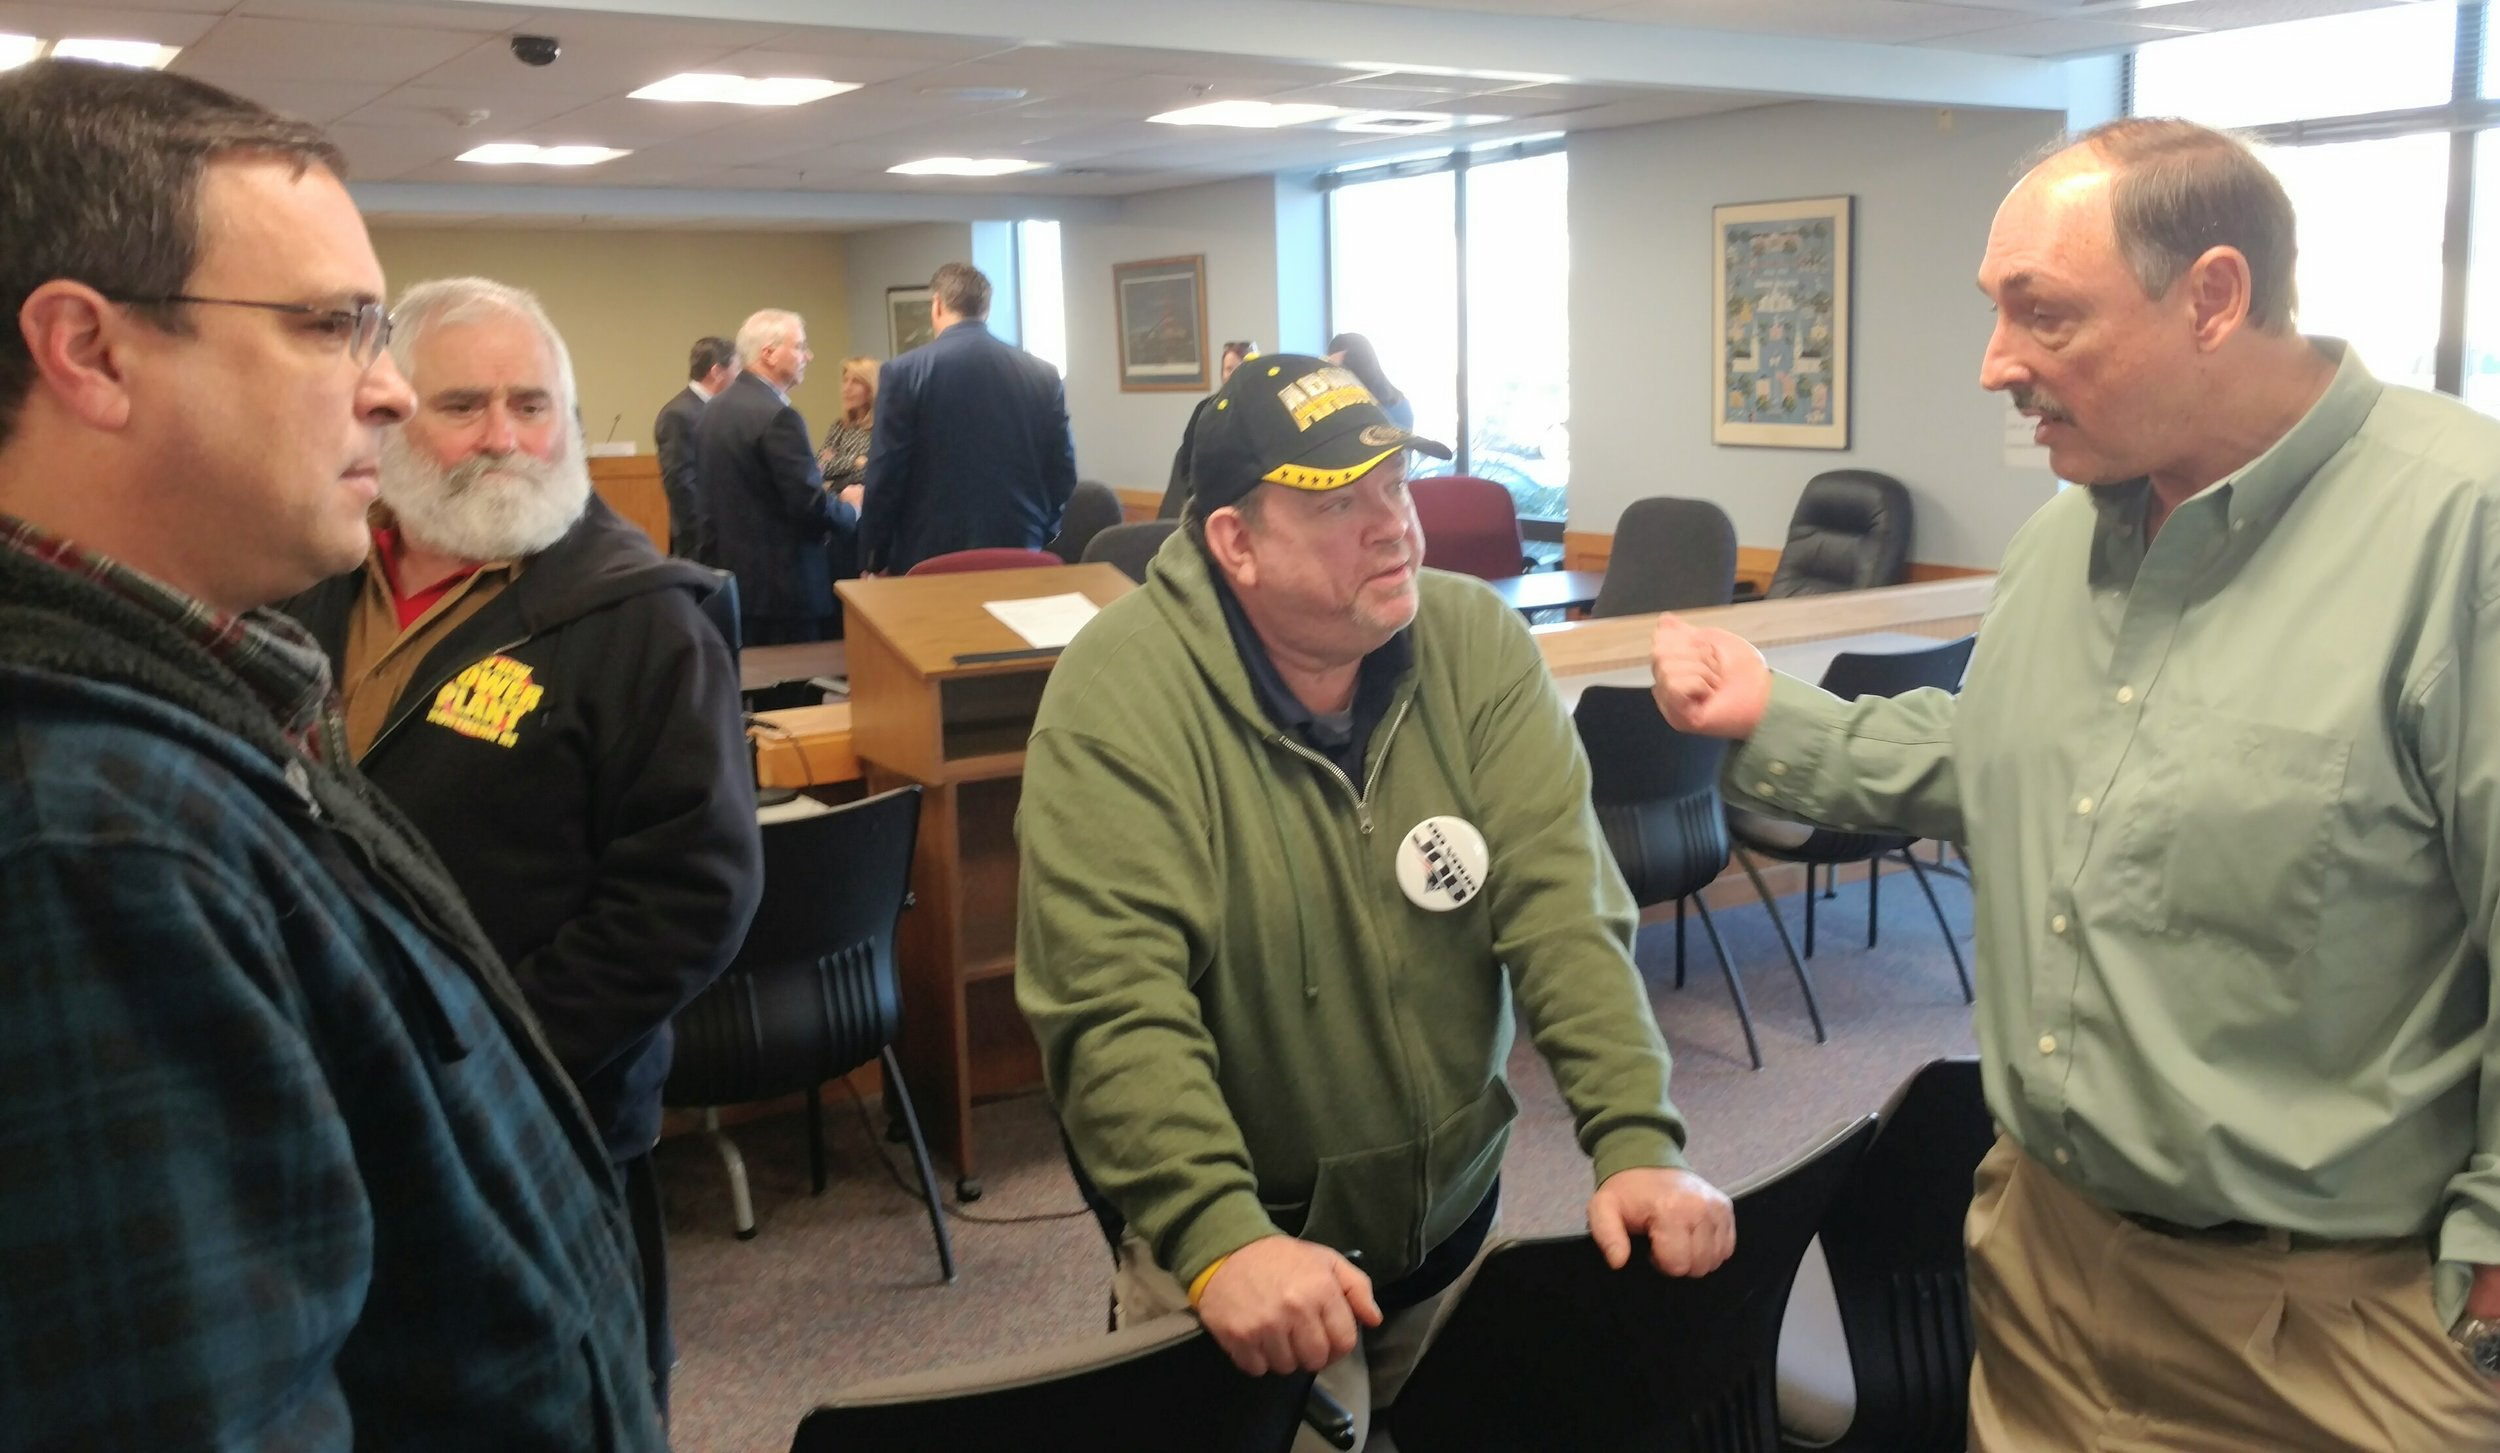 Burrillville Town Council members John Pacheco, left, Ray Trinque, middle, and town administrator Mike Wood talk after the Feb. 6 meeting.